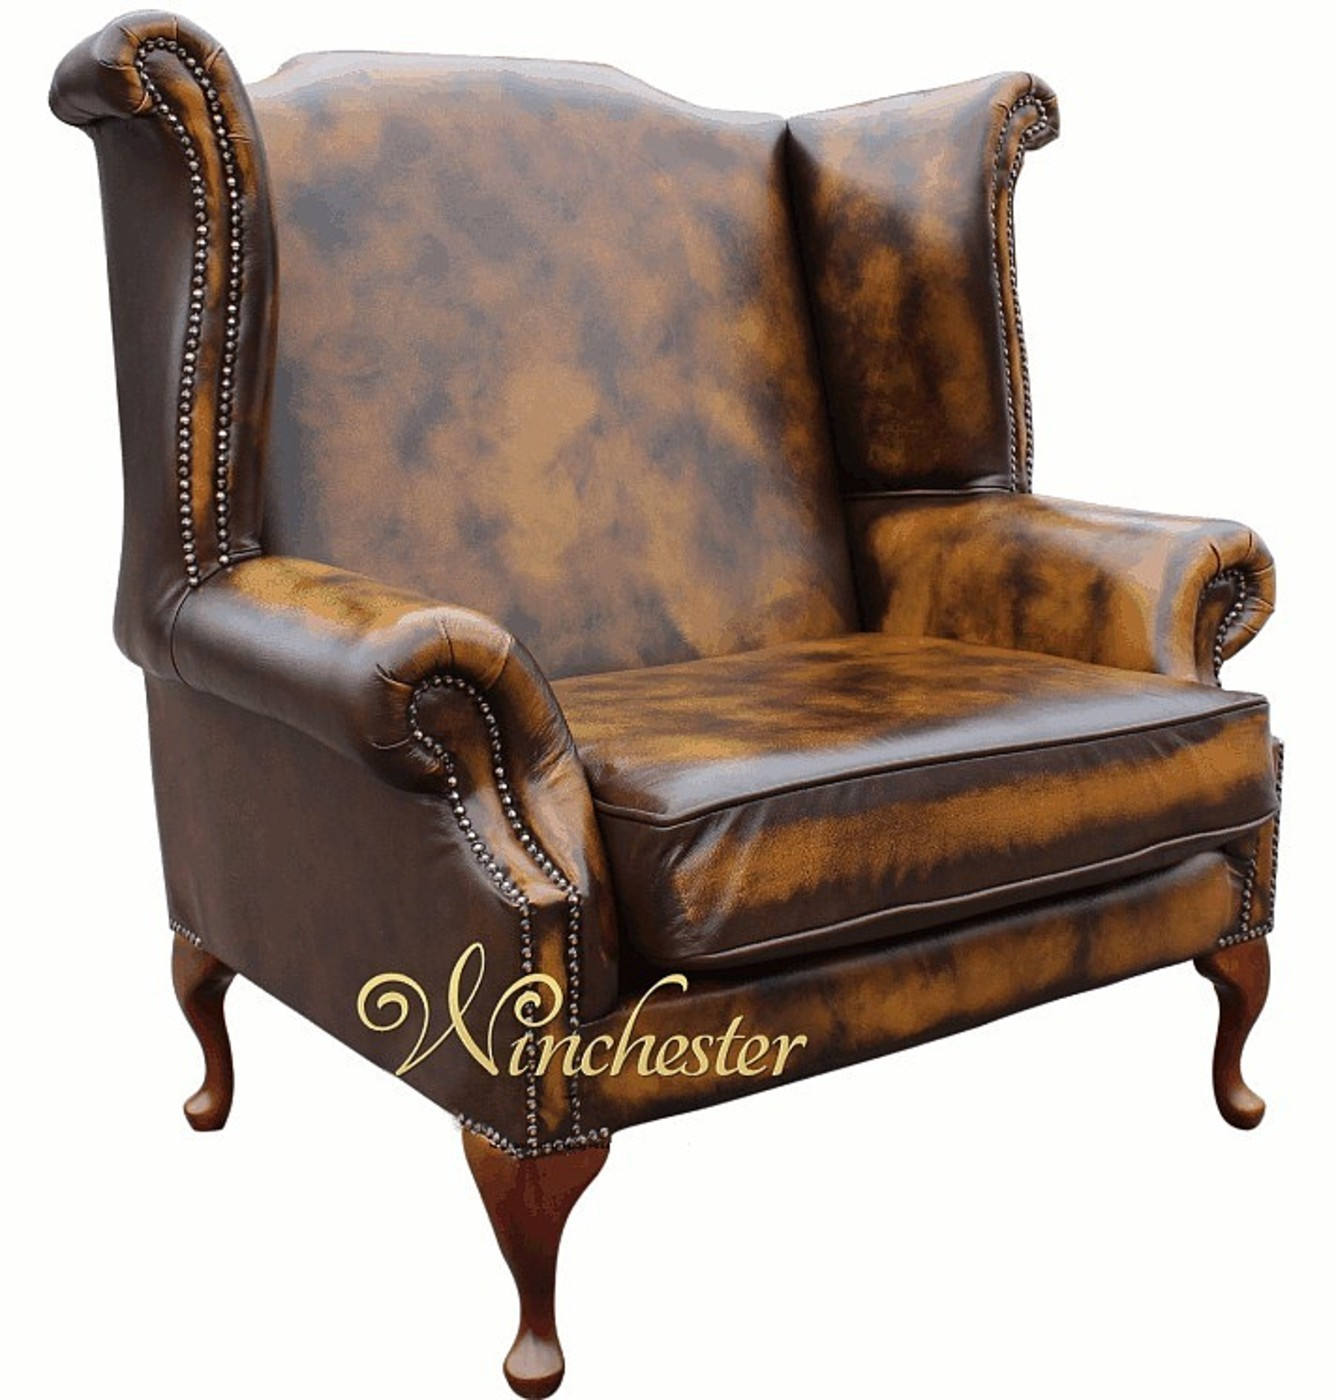 saxon classic queen anne high back wing chair antique